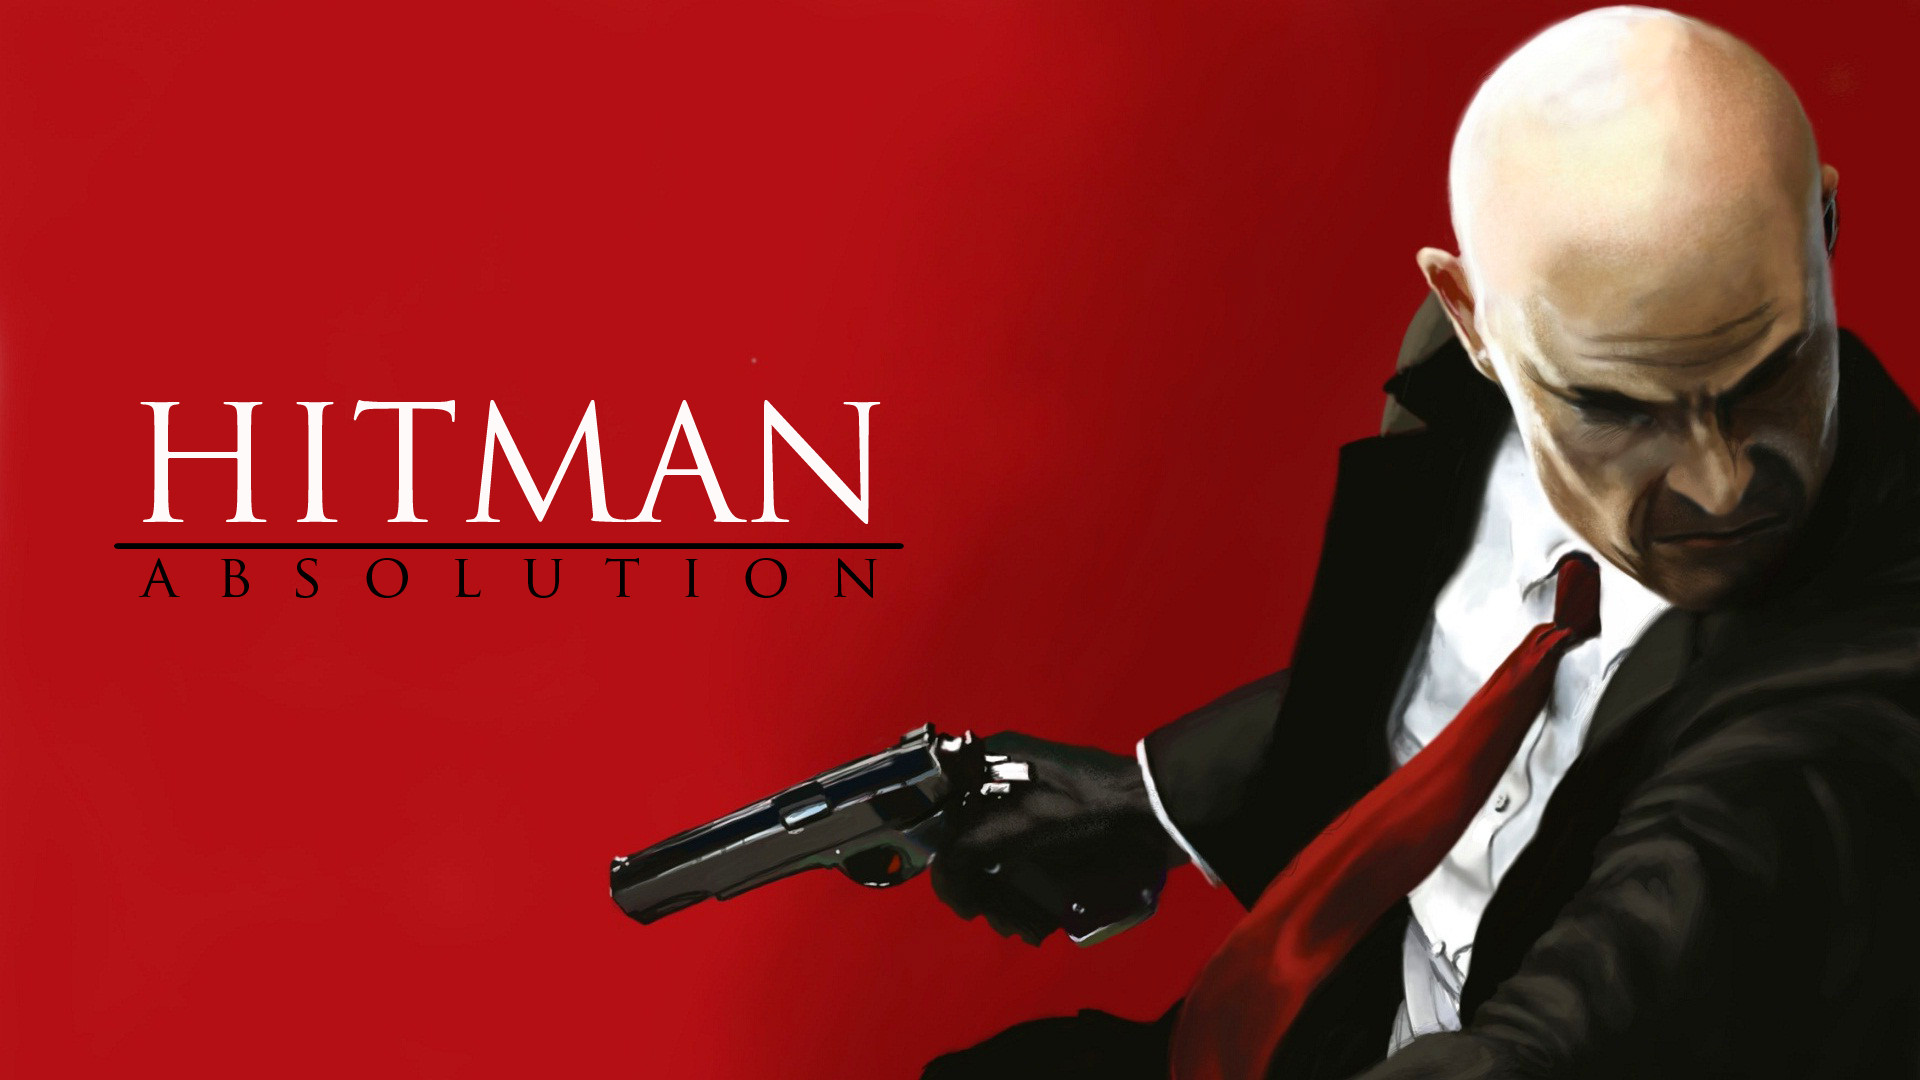 1920x1080 Hitman: Absolution